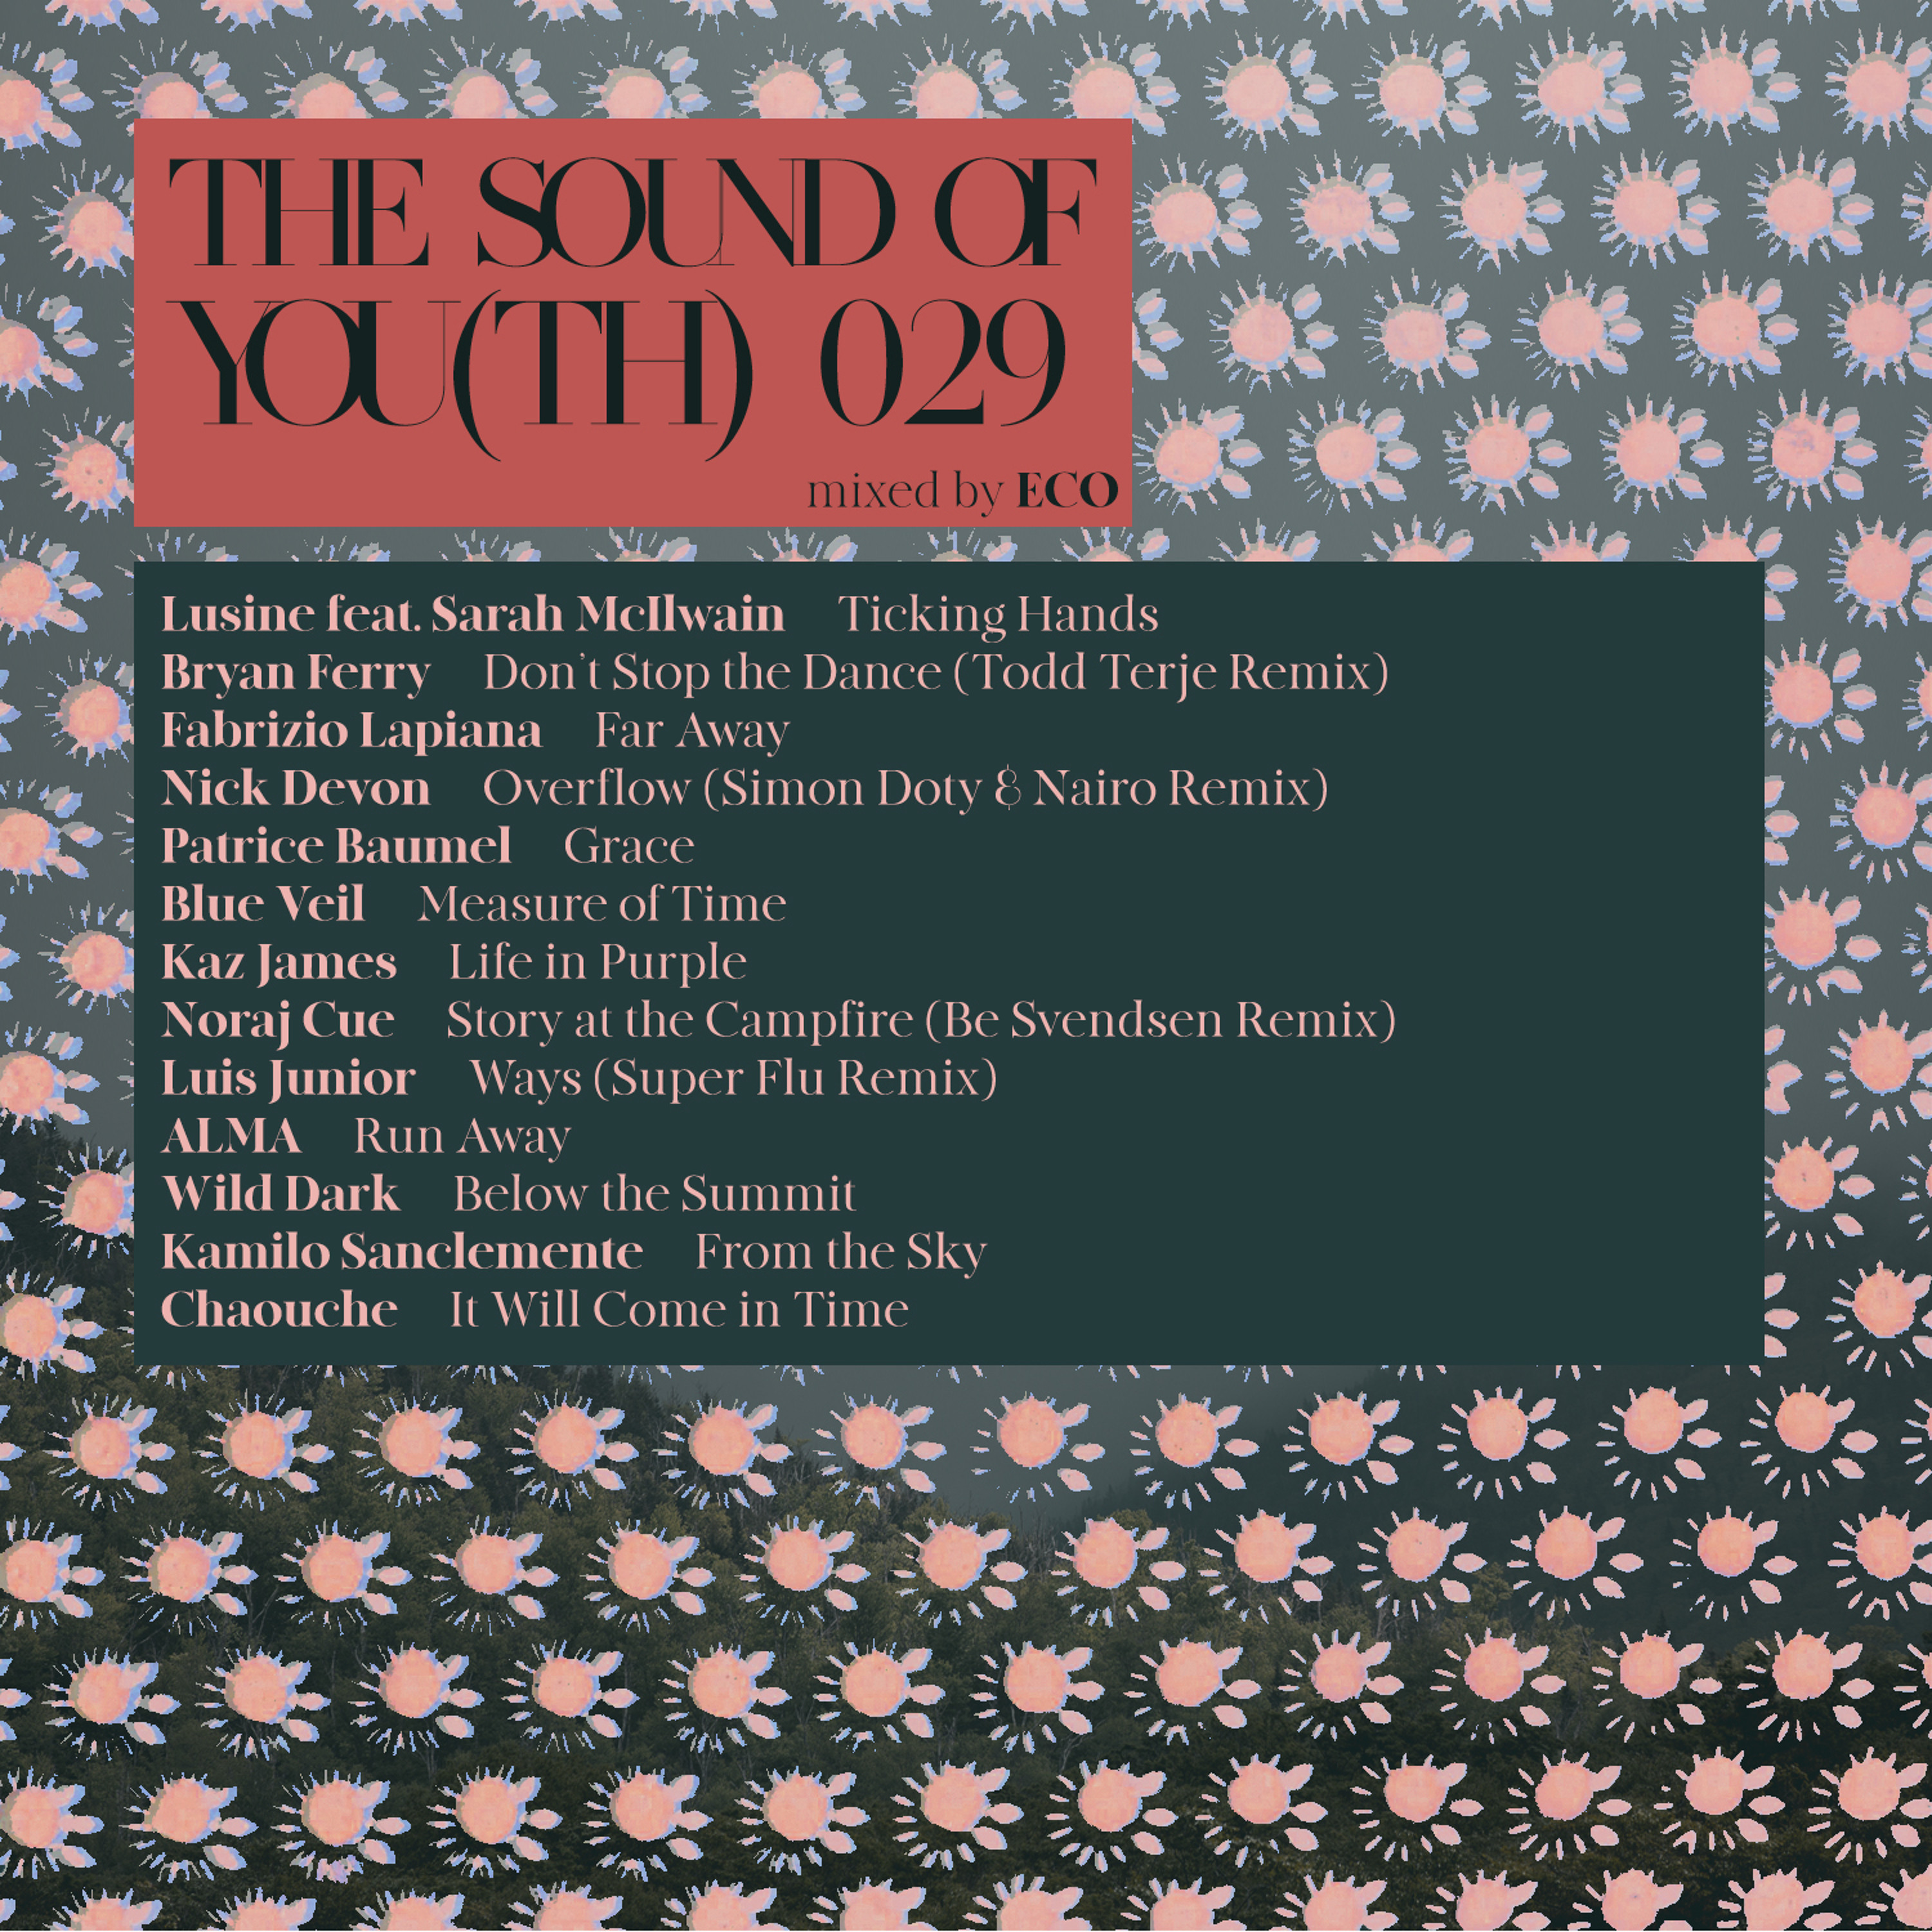 The Sound of You(th) 029